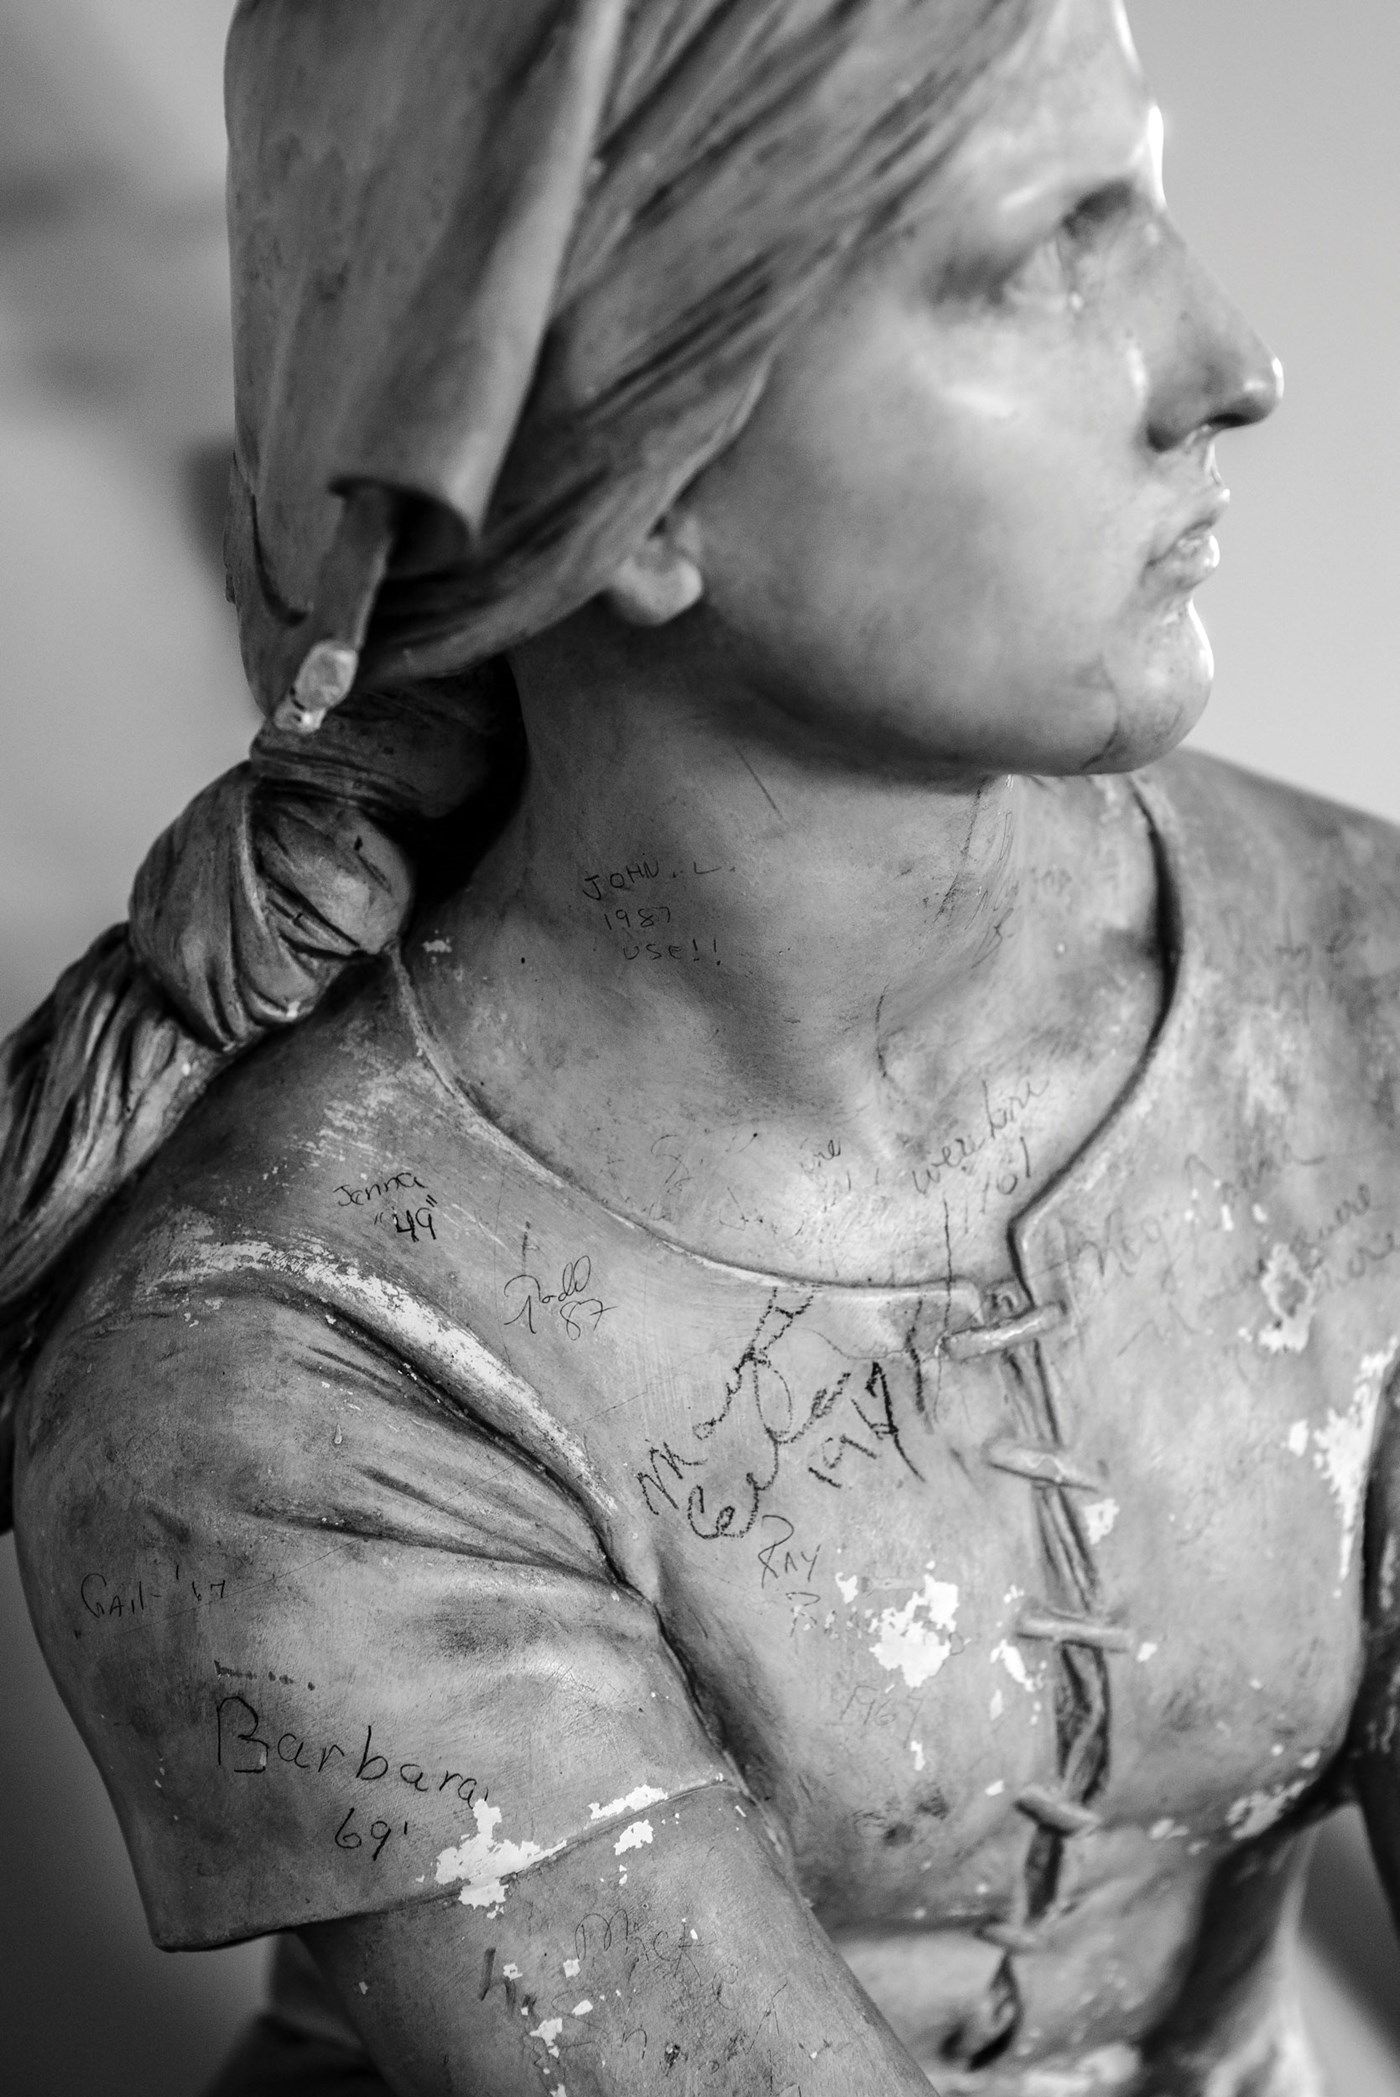 Plaster sculpture of Joan of Arc adorned with student signatures